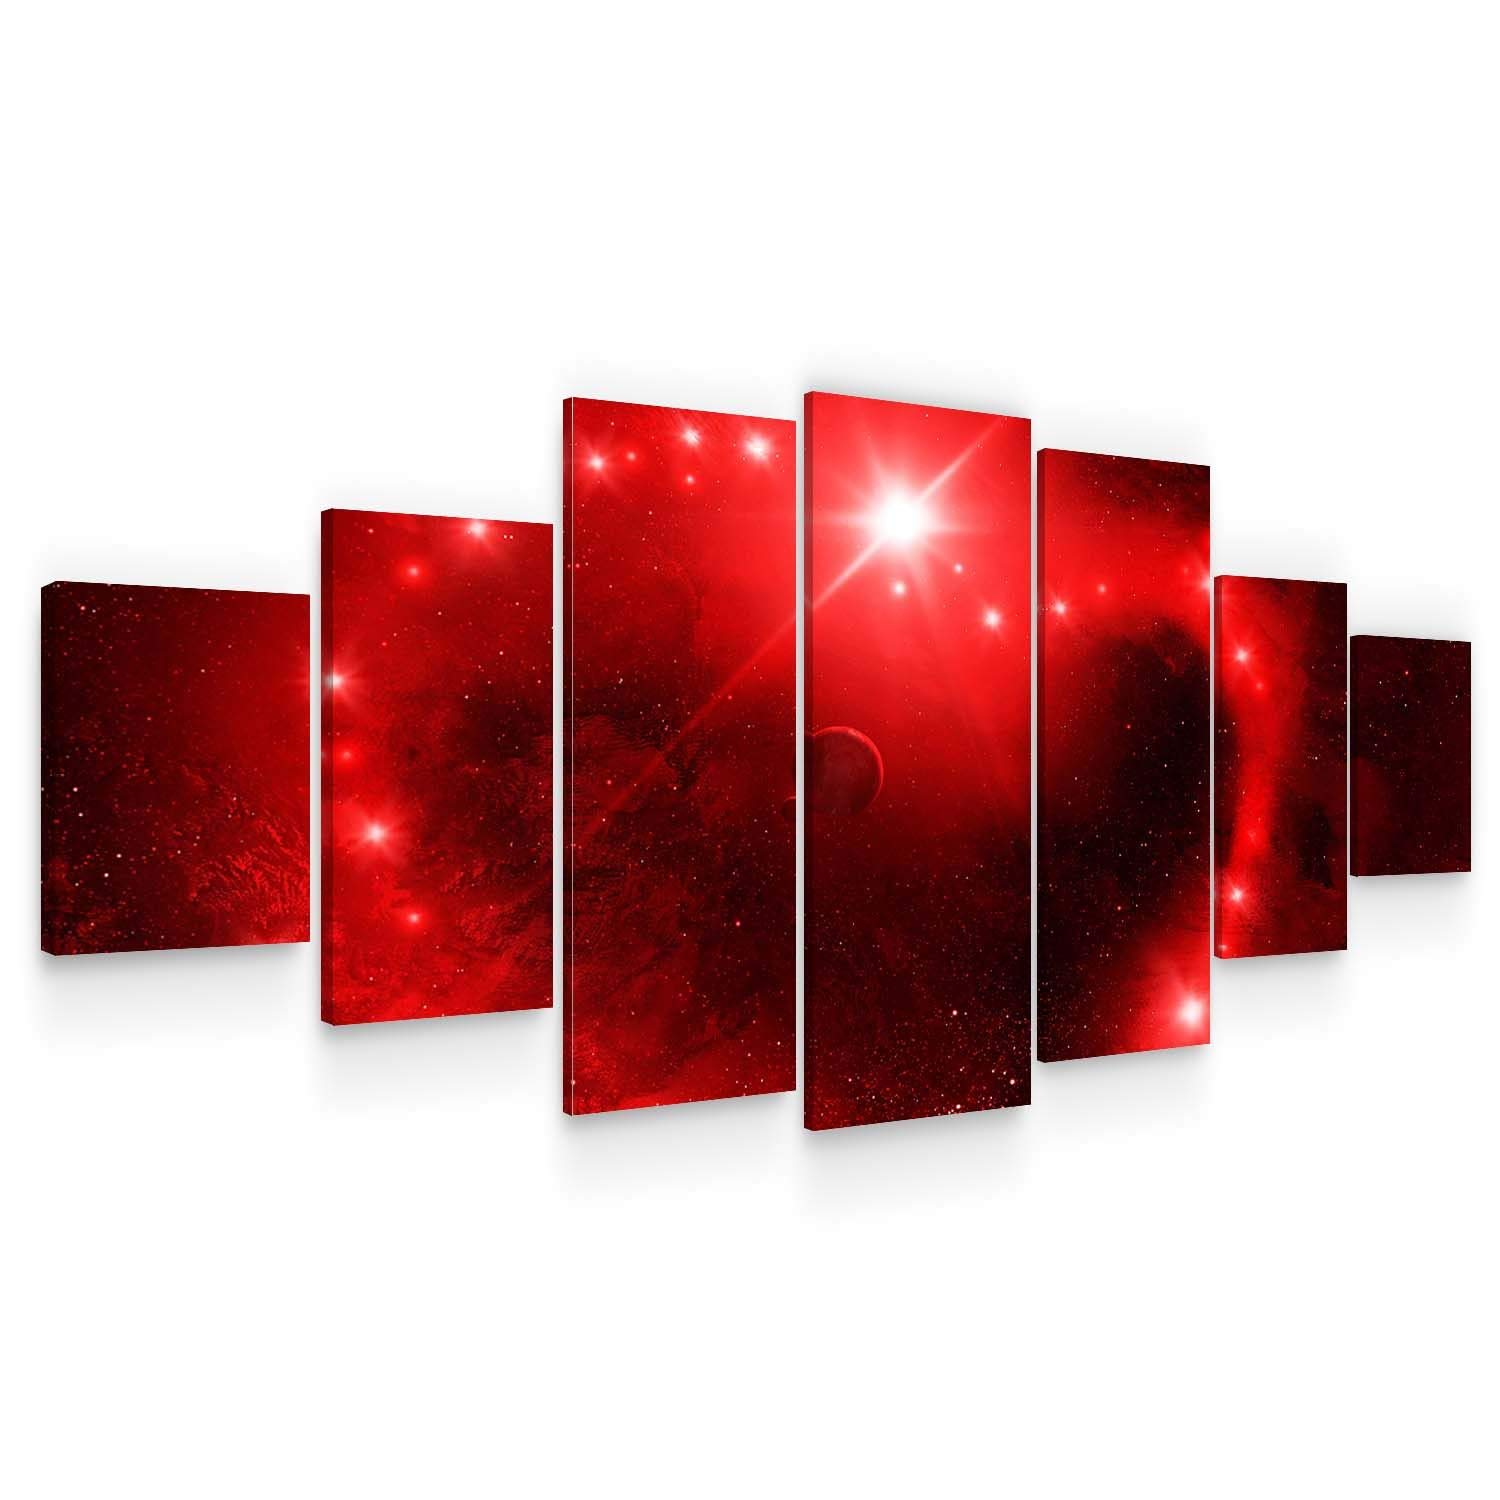 Startonight Huge Canvas Wall Art Red Space - Large Framed Set of 7 40 x 95 Inches